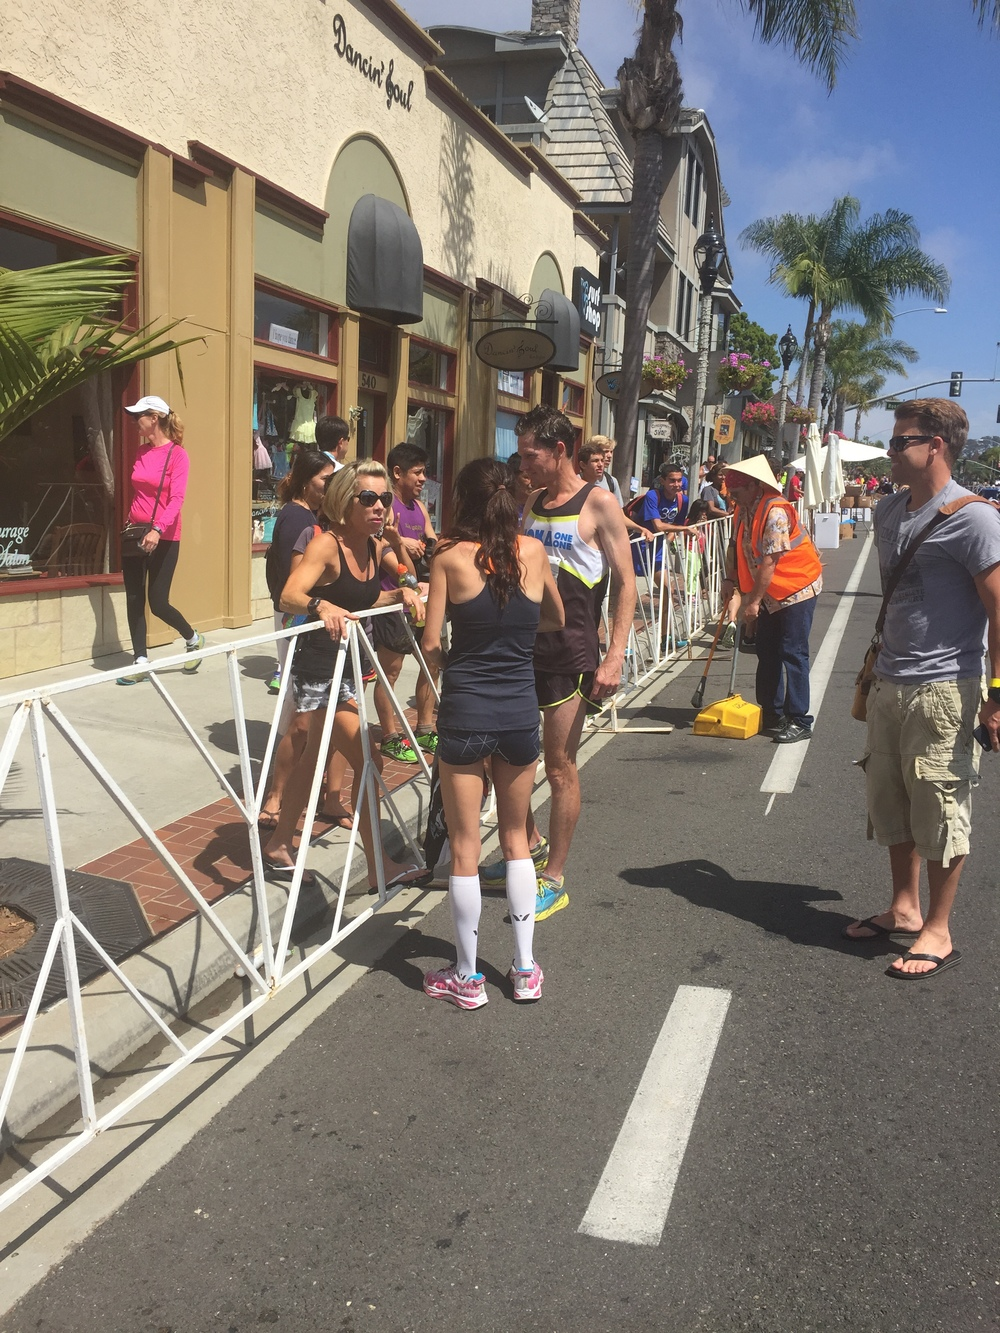 Terri (the real celeb here), Steph Rothstein Bruce, Ben Bruce & Josh Cox. Talk about a speedy (stalkerish?) pic.